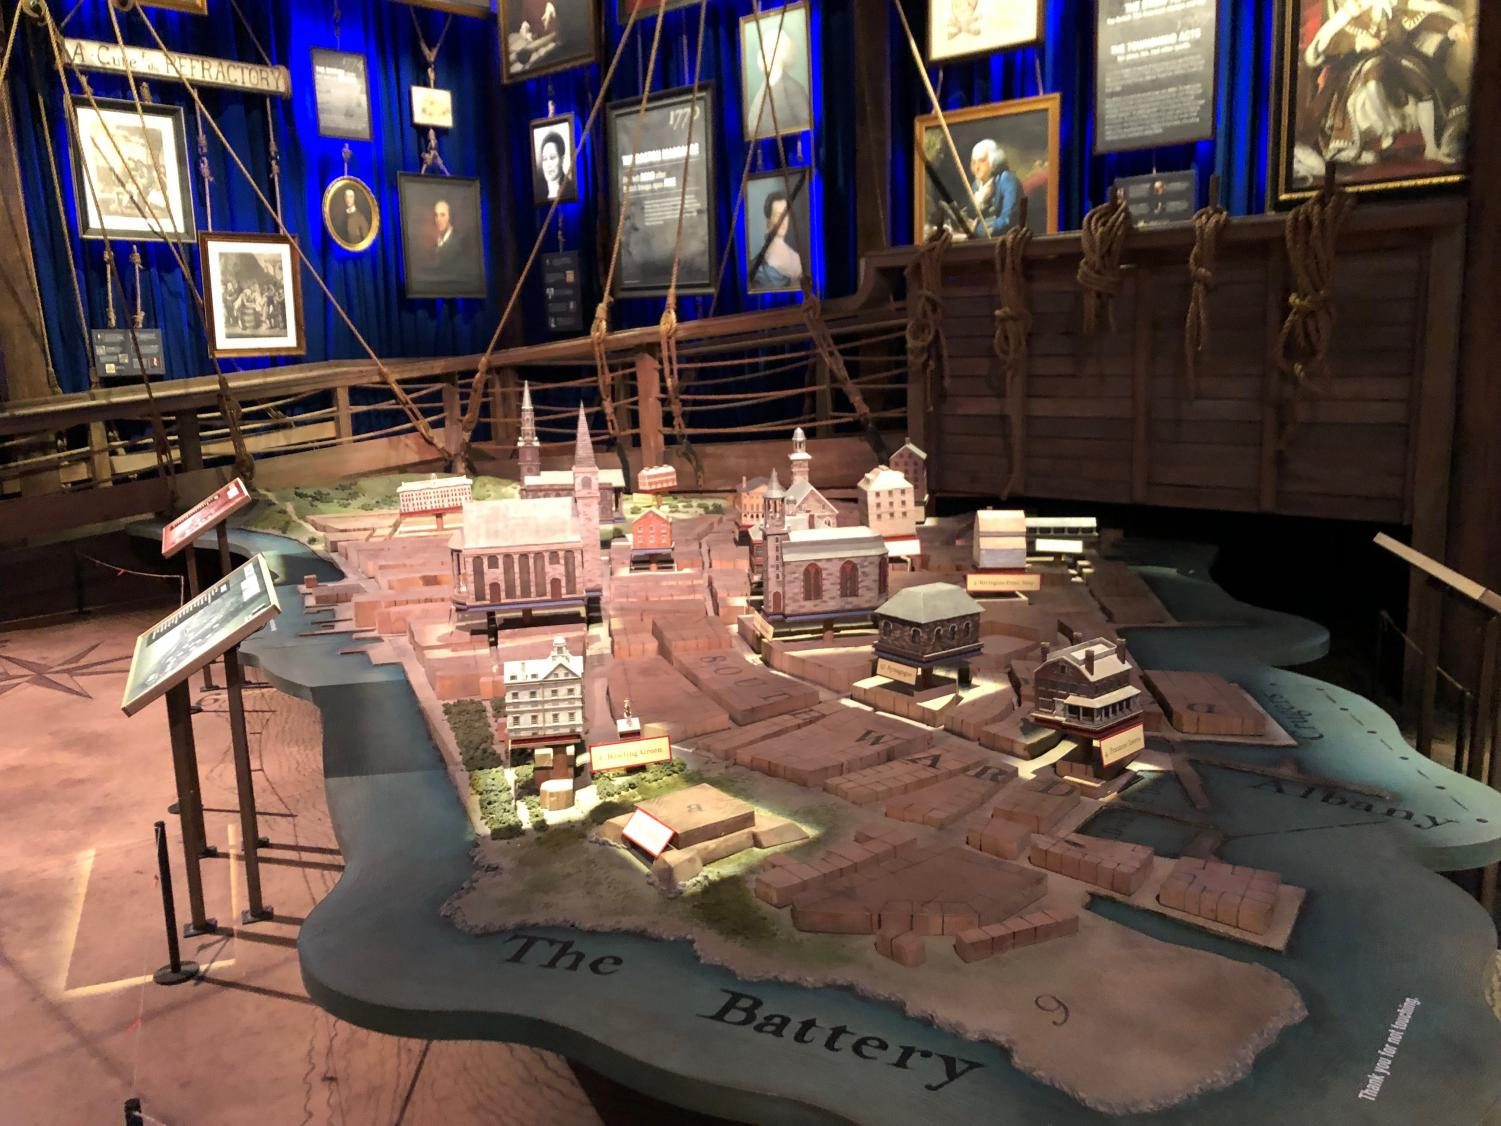 """HAMILTON'S WORLD. This diagram of """"The Battery,"""" a term for Manhattan based on the artillery batteries that protected the city from the British, comes complete with sets of buildings that defined New York at the time. The room is decorated with portraits of important figures in Hamilton's life."""